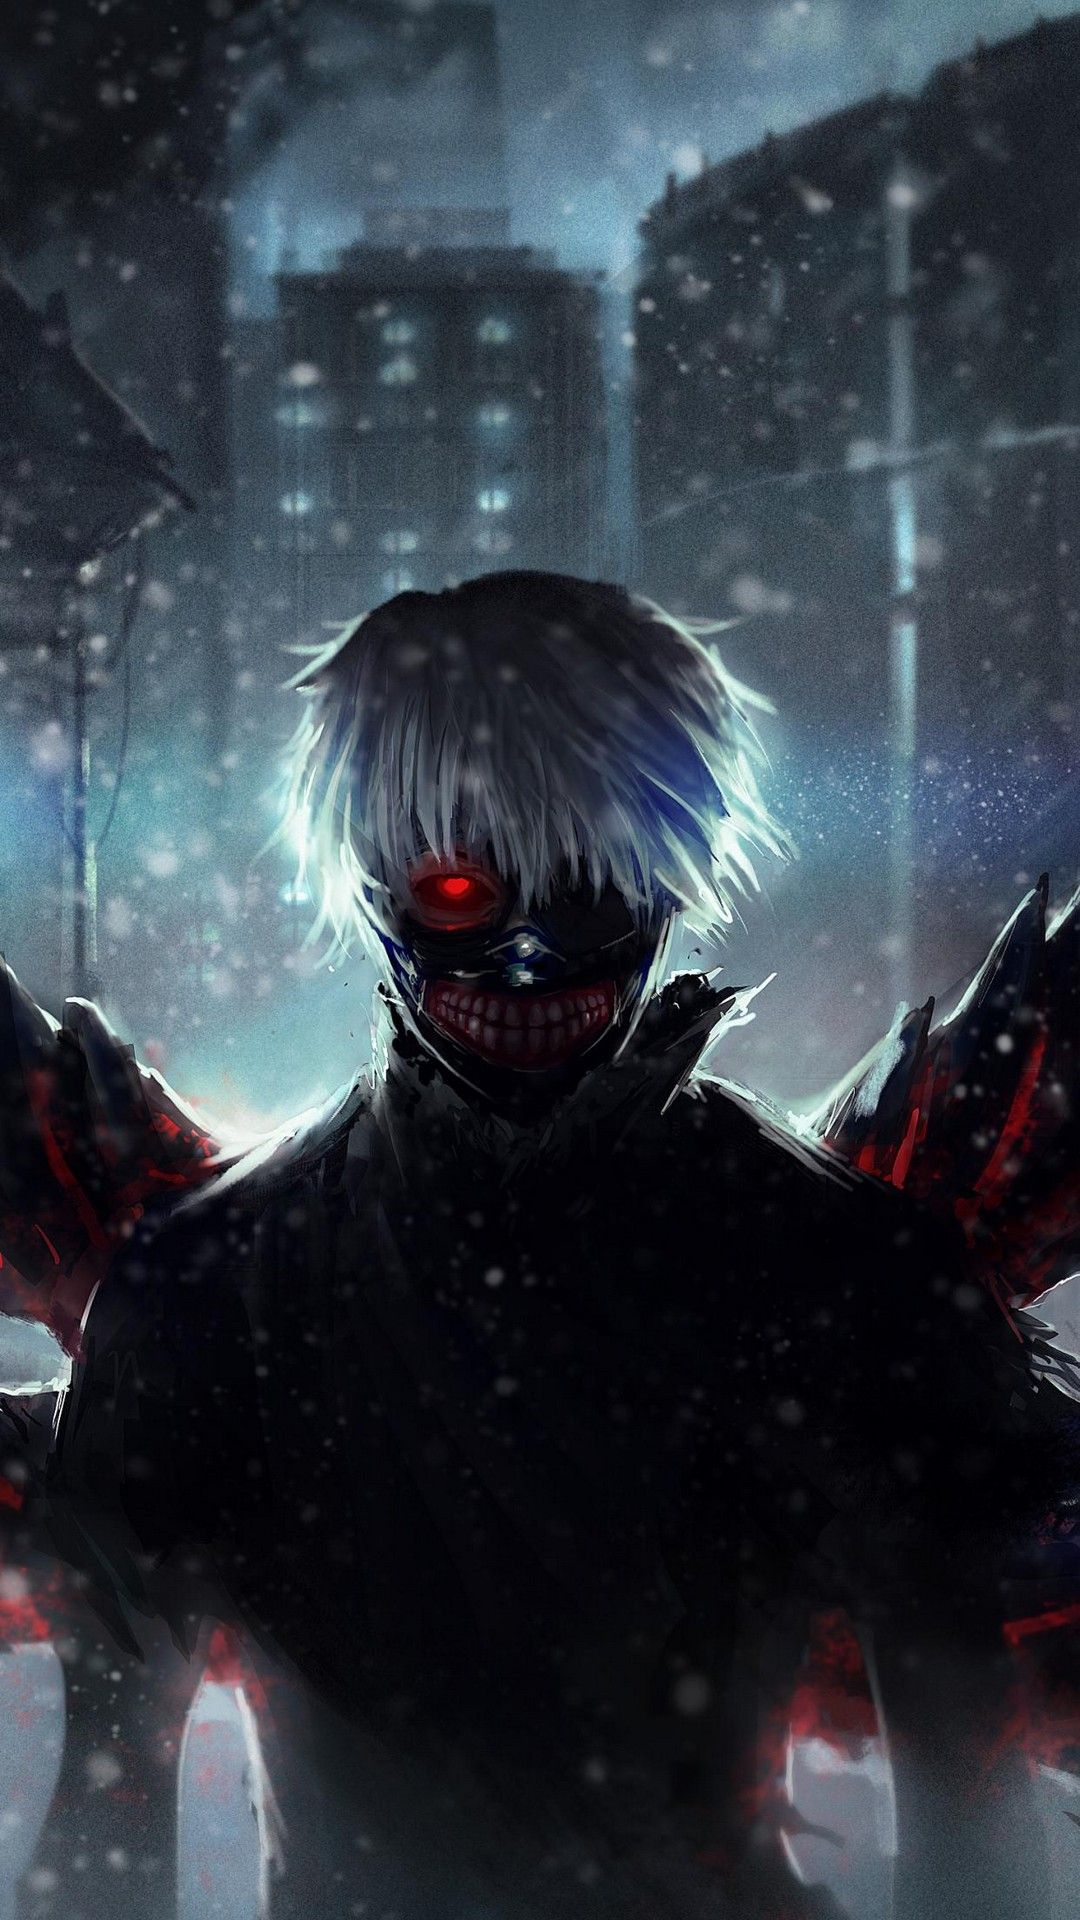 Cool Anime 2020 Wallpapers - Wallpaper Cave